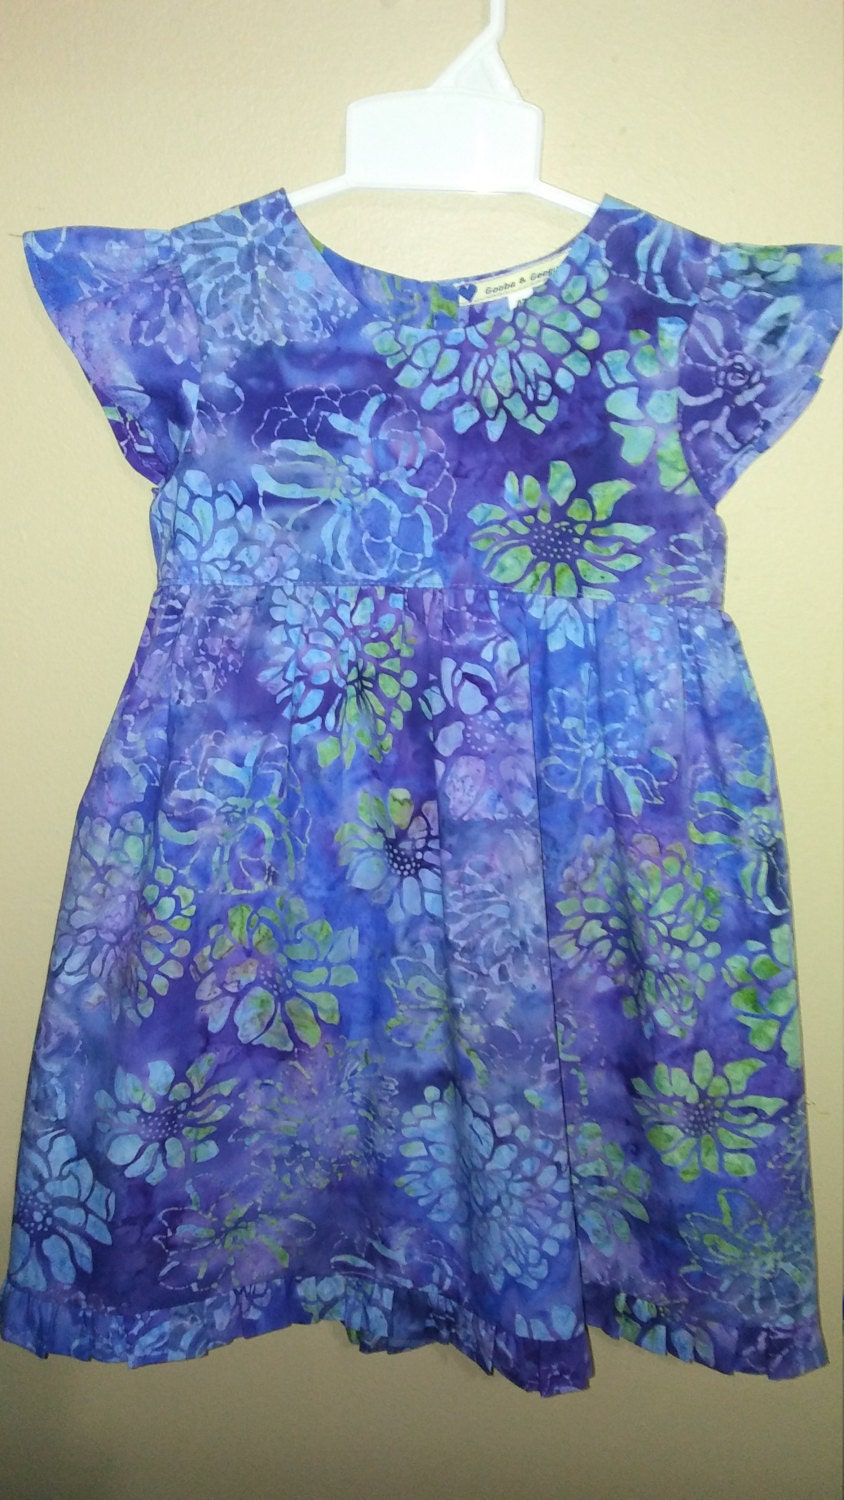 T4 childrens dress cotton batik fabric summer dress for Childrens dress fabric